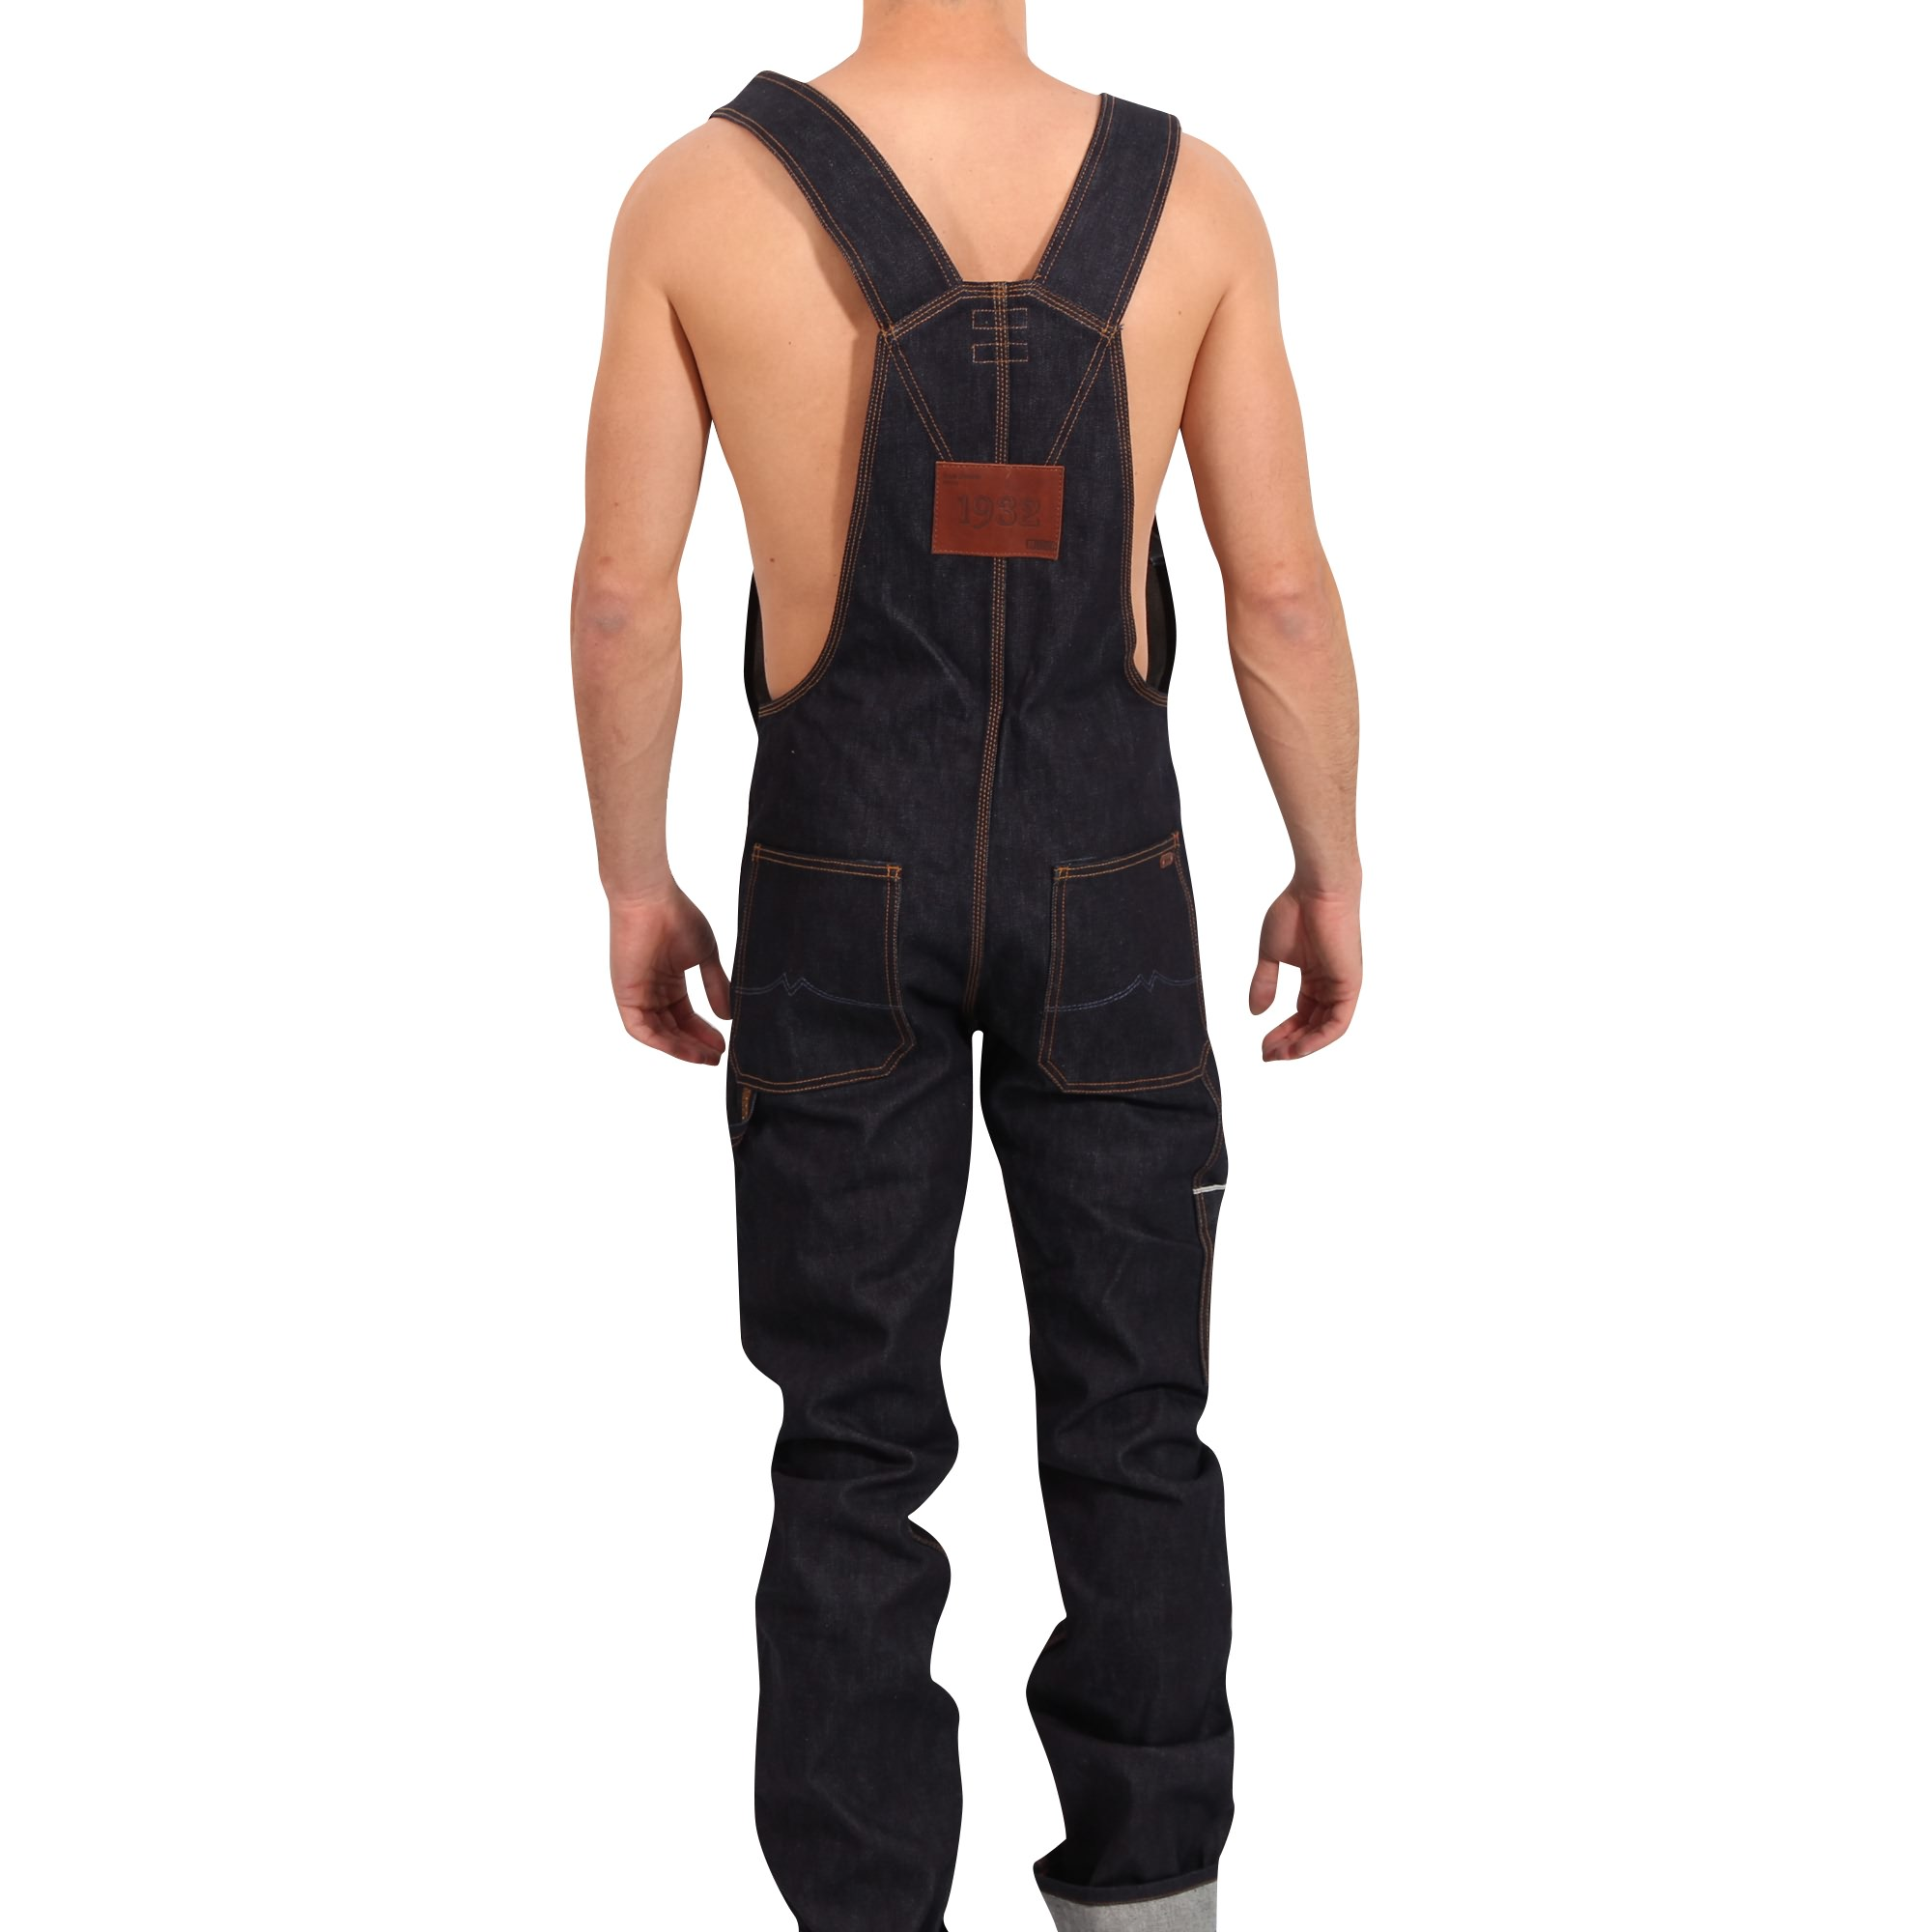 mustang jeans herren jeans latzhose bib overall in dunkelblau gr e m ebay. Black Bedroom Furniture Sets. Home Design Ideas